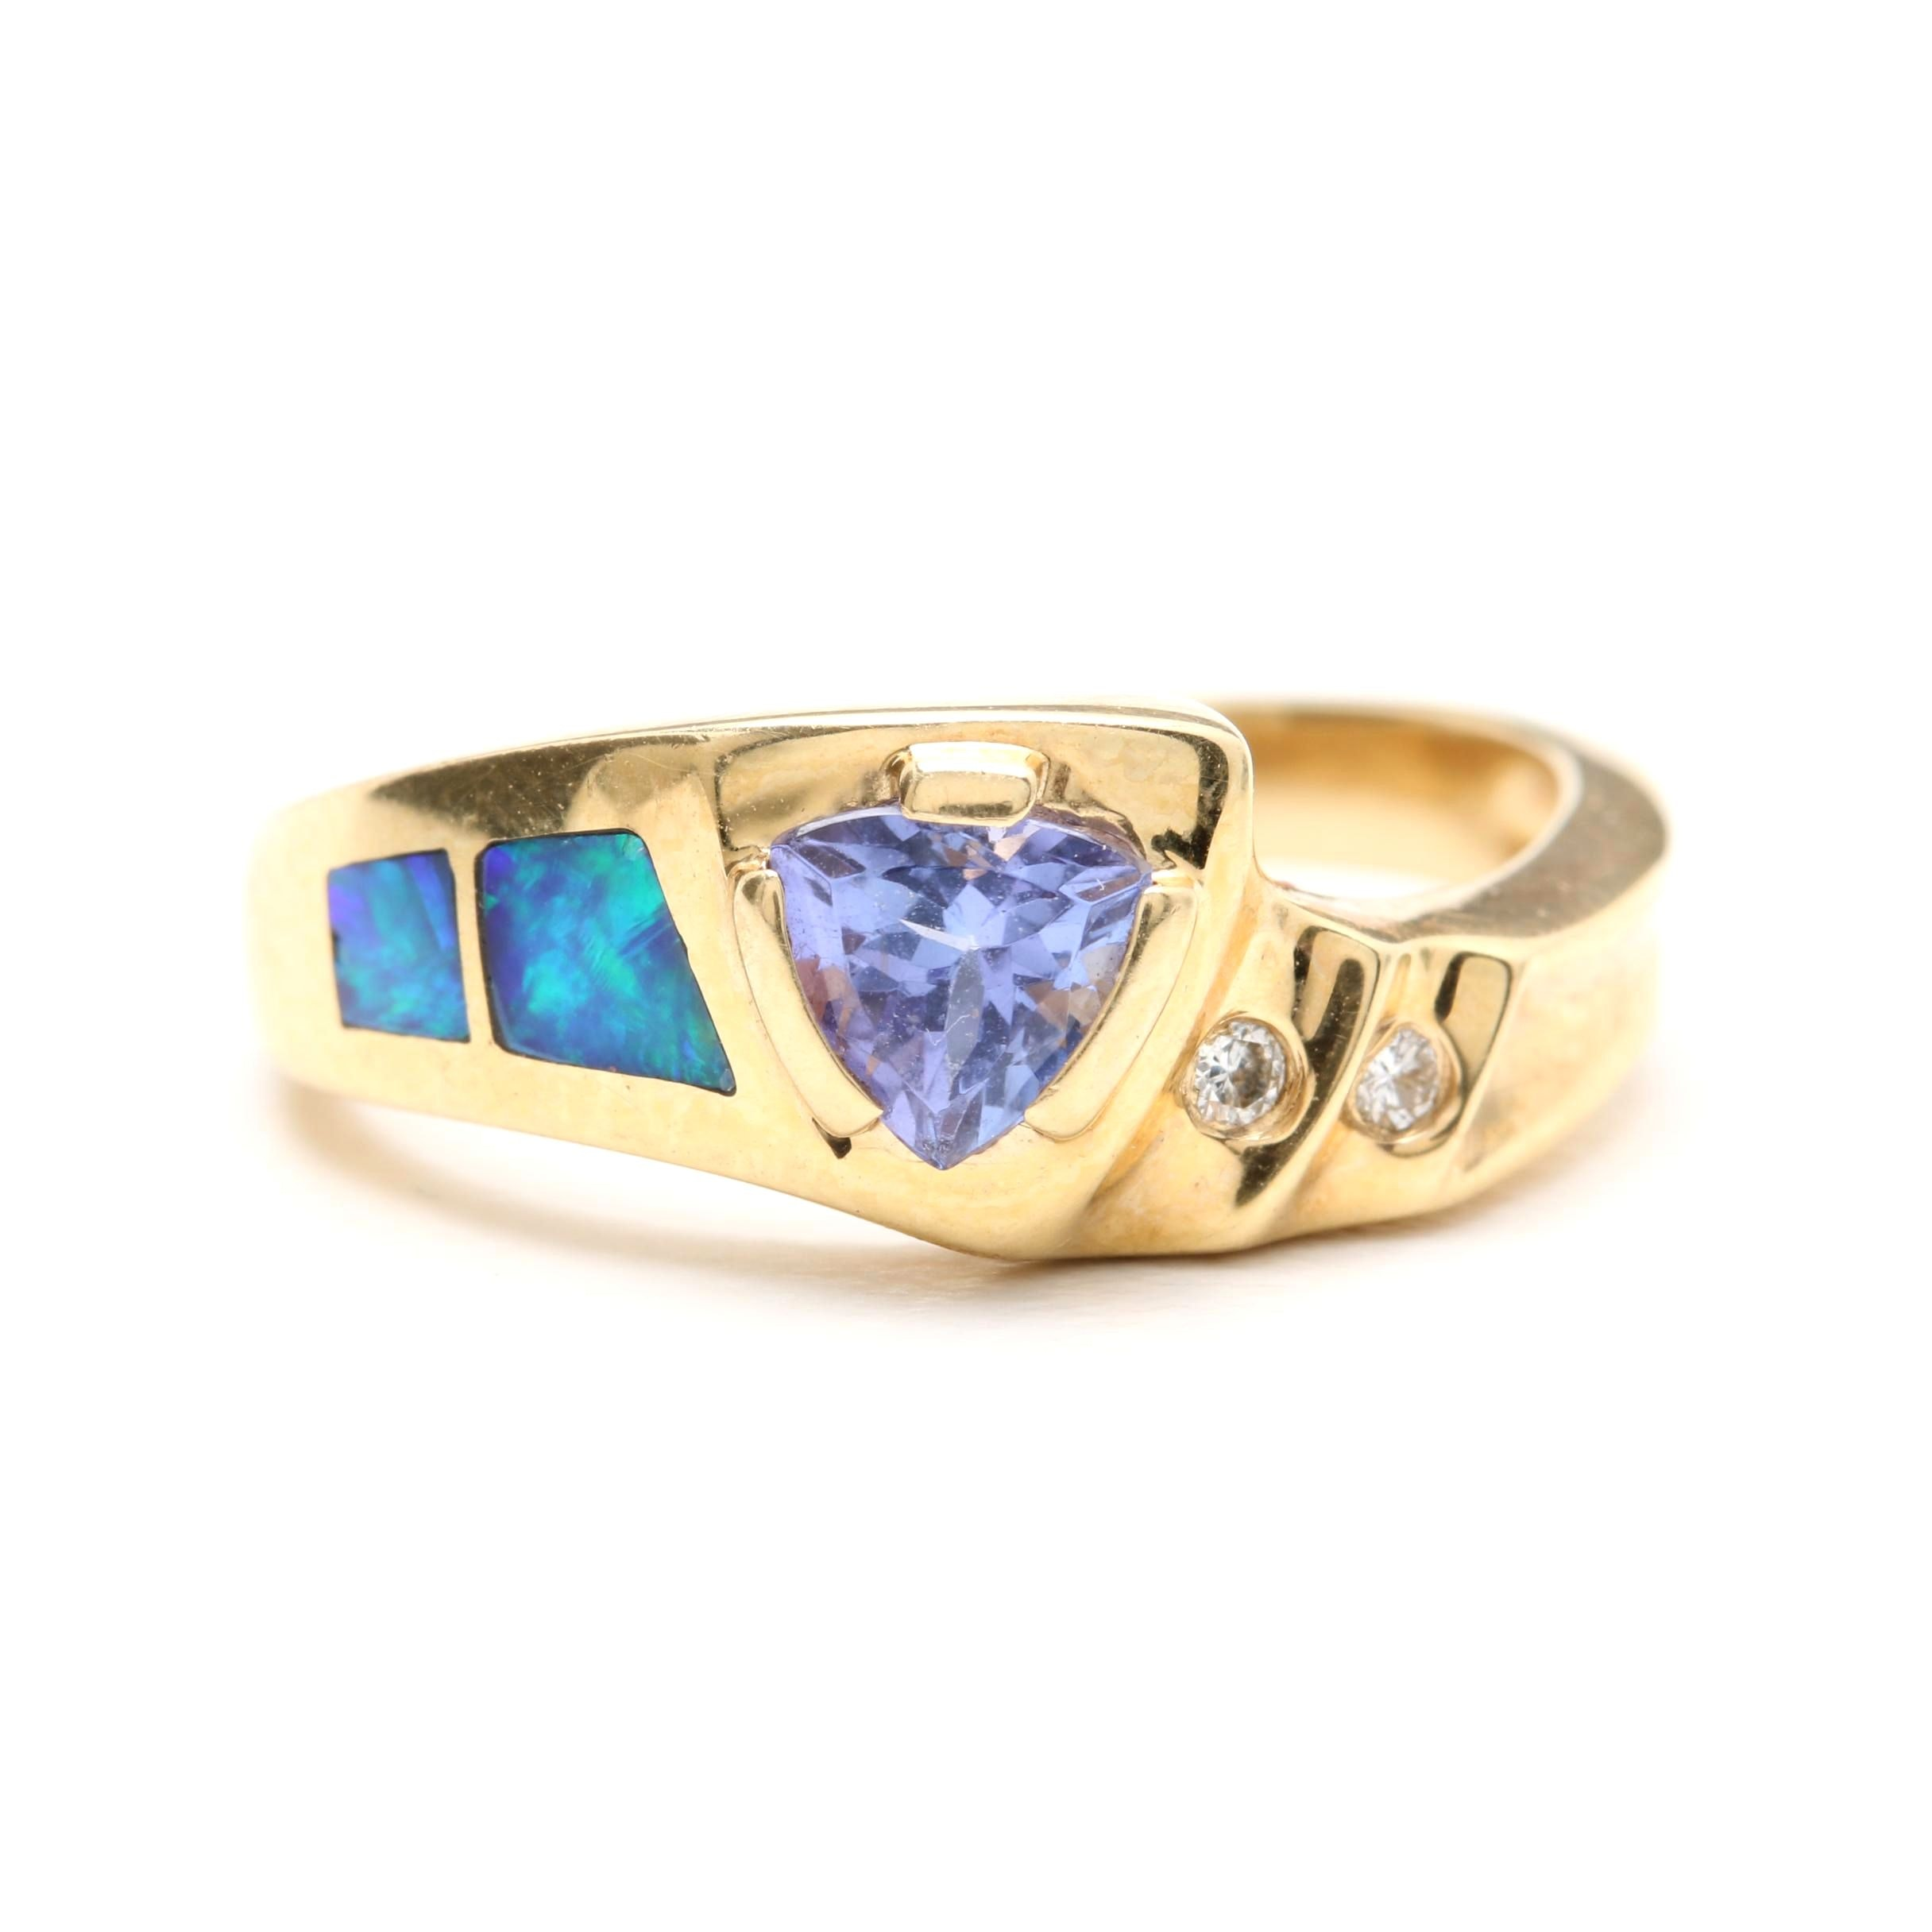 14K Yellow Gold Tanzanite, Opal Doublet, and Diamond Ring